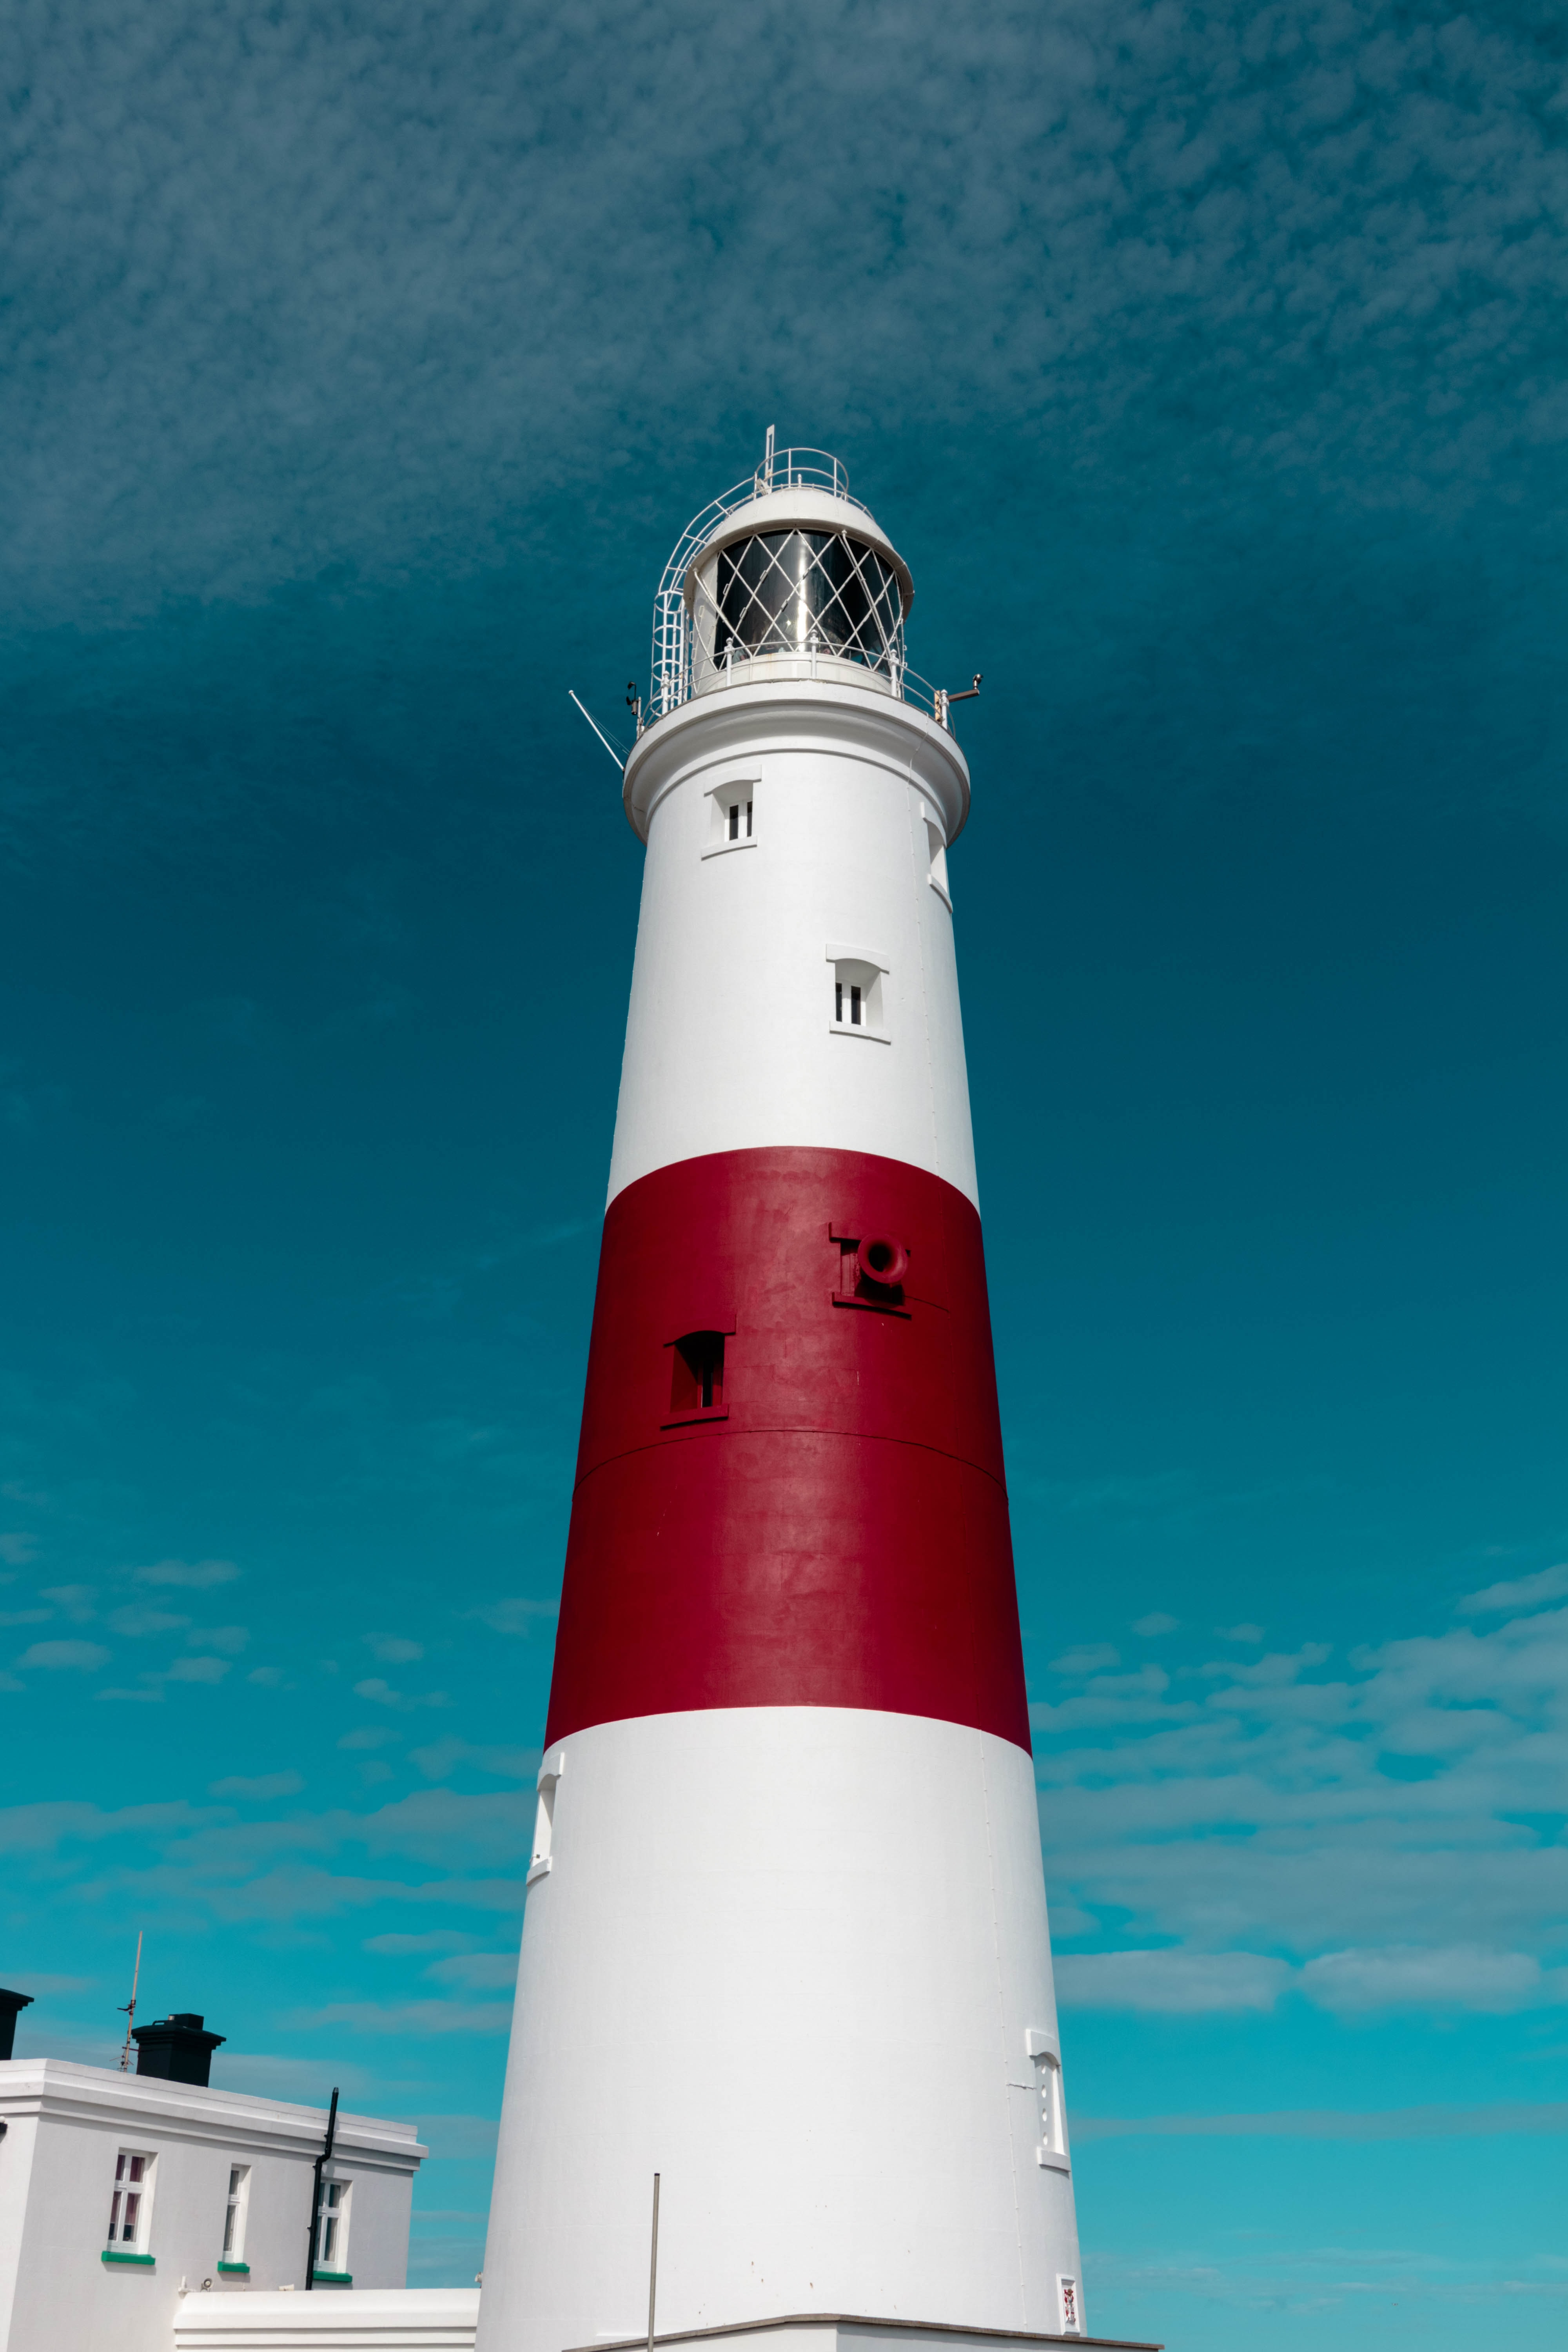 architectural photography of white and red lighthouse